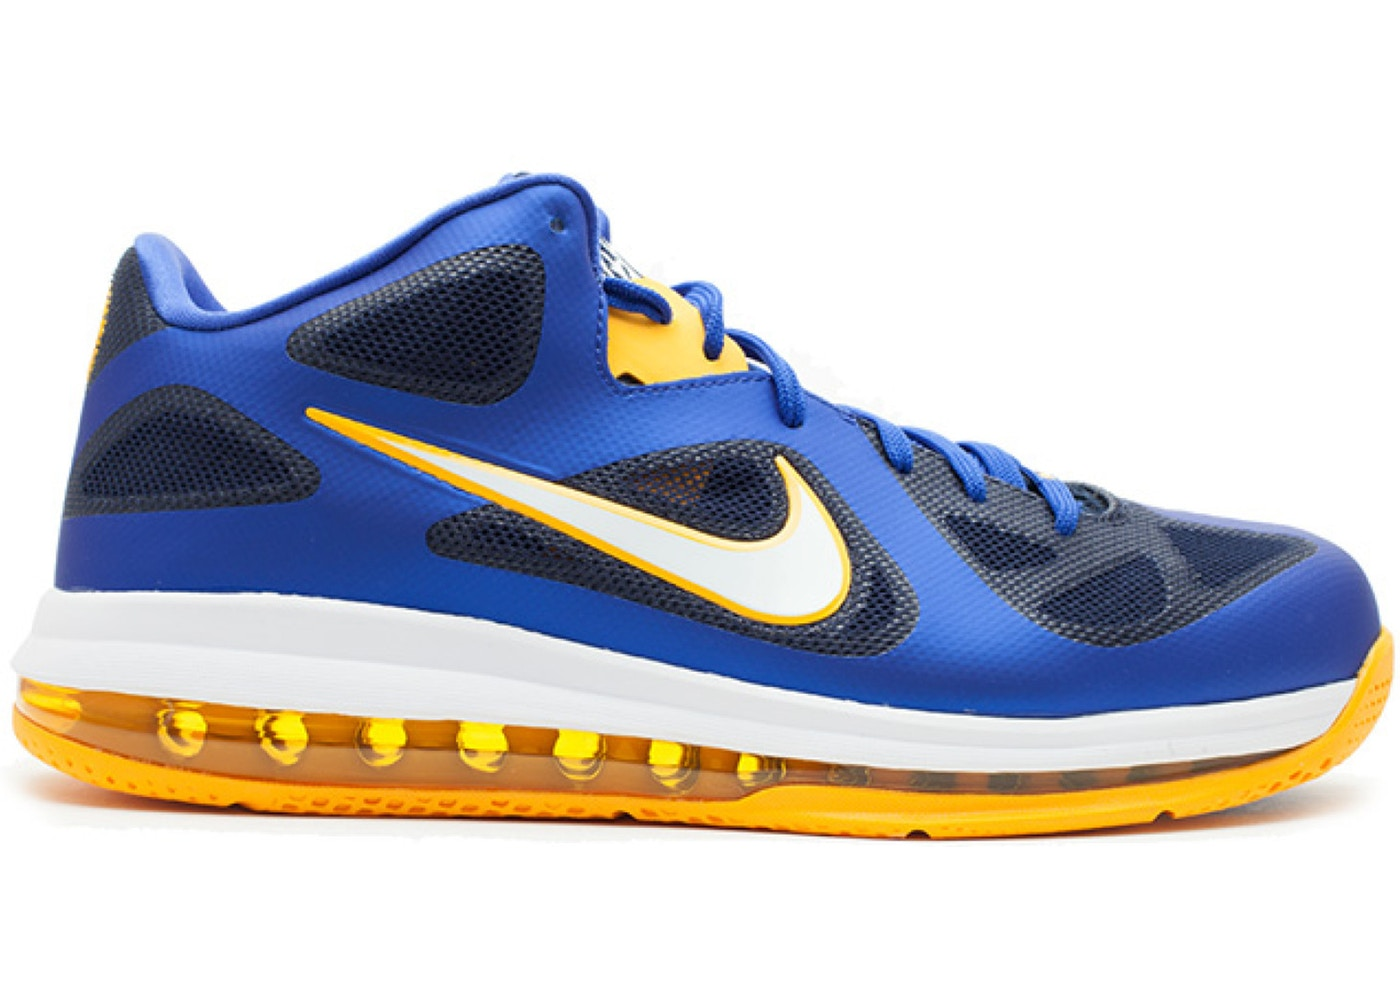 ナイキ NIKE レブロン スニーカー 【 LEBRON 9 LOW ENTOURAGE GAME ROYAL UNIVERSITY GOLDMIDNIGHT NAVY 】 メンズ